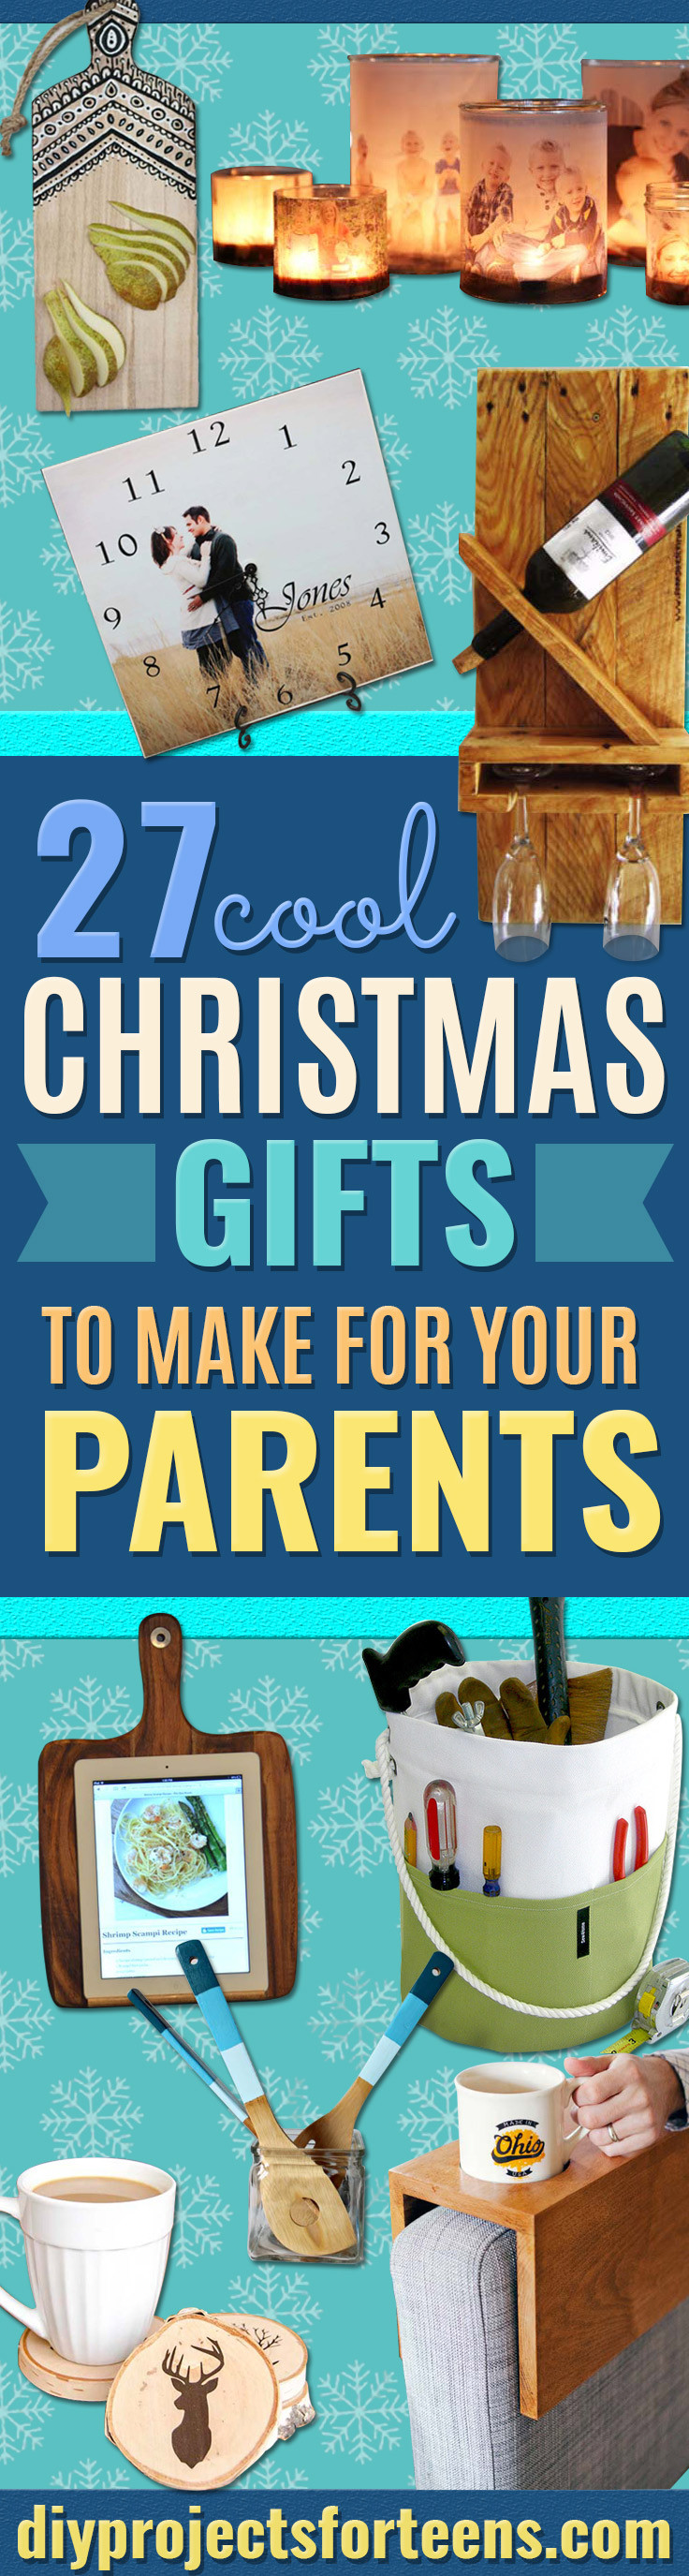 Best ideas about Christmas Gift Ideas For Mom And Dad . Save or Pin Cool Christmas Gifts To Make For Your Parents Now.